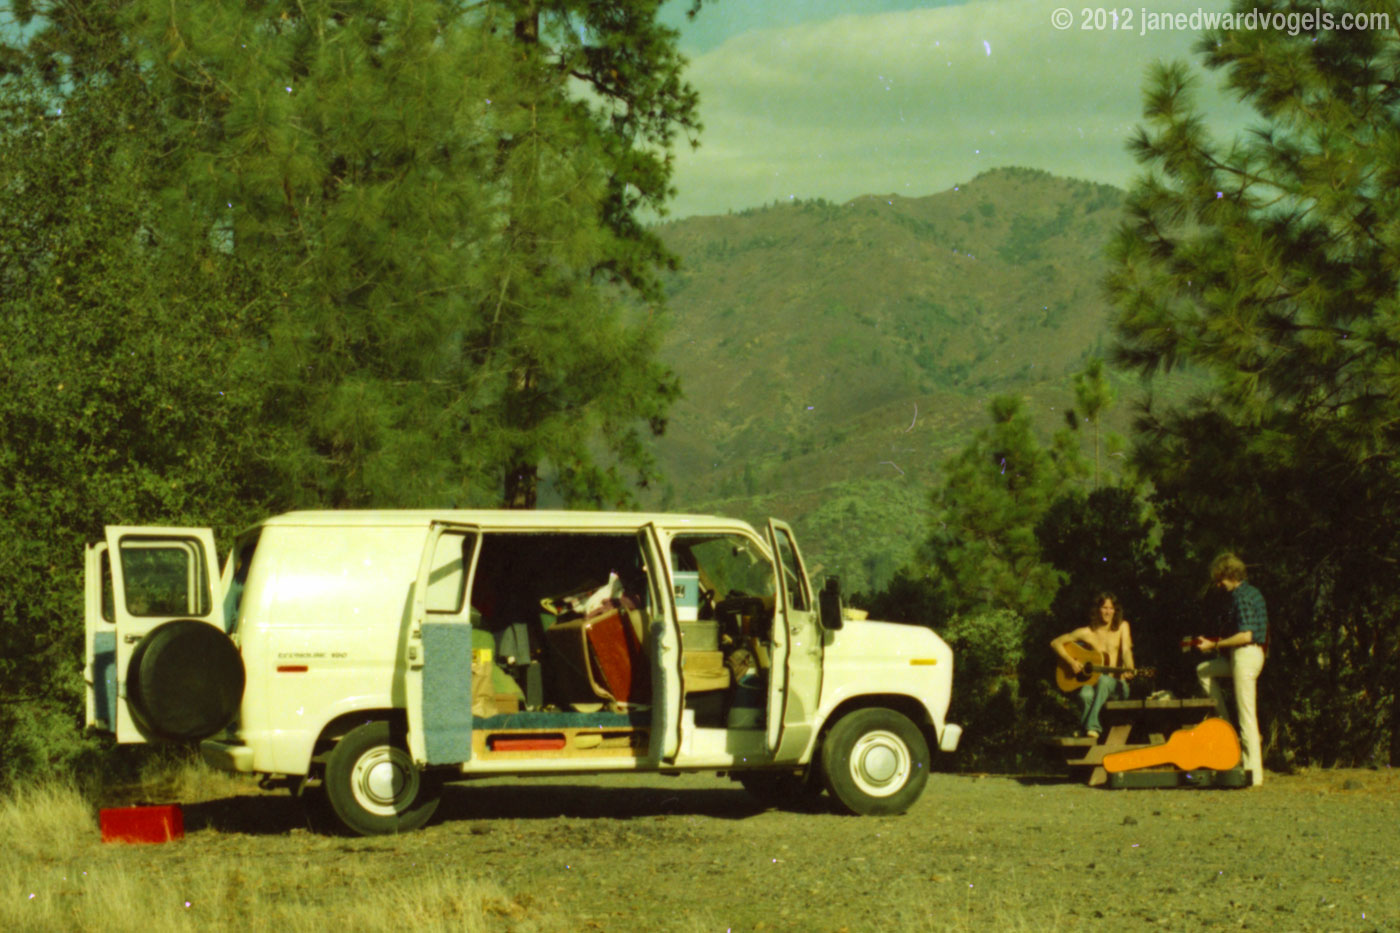 Dan Mantel, Ford Econoline, Jan Edward Vogels